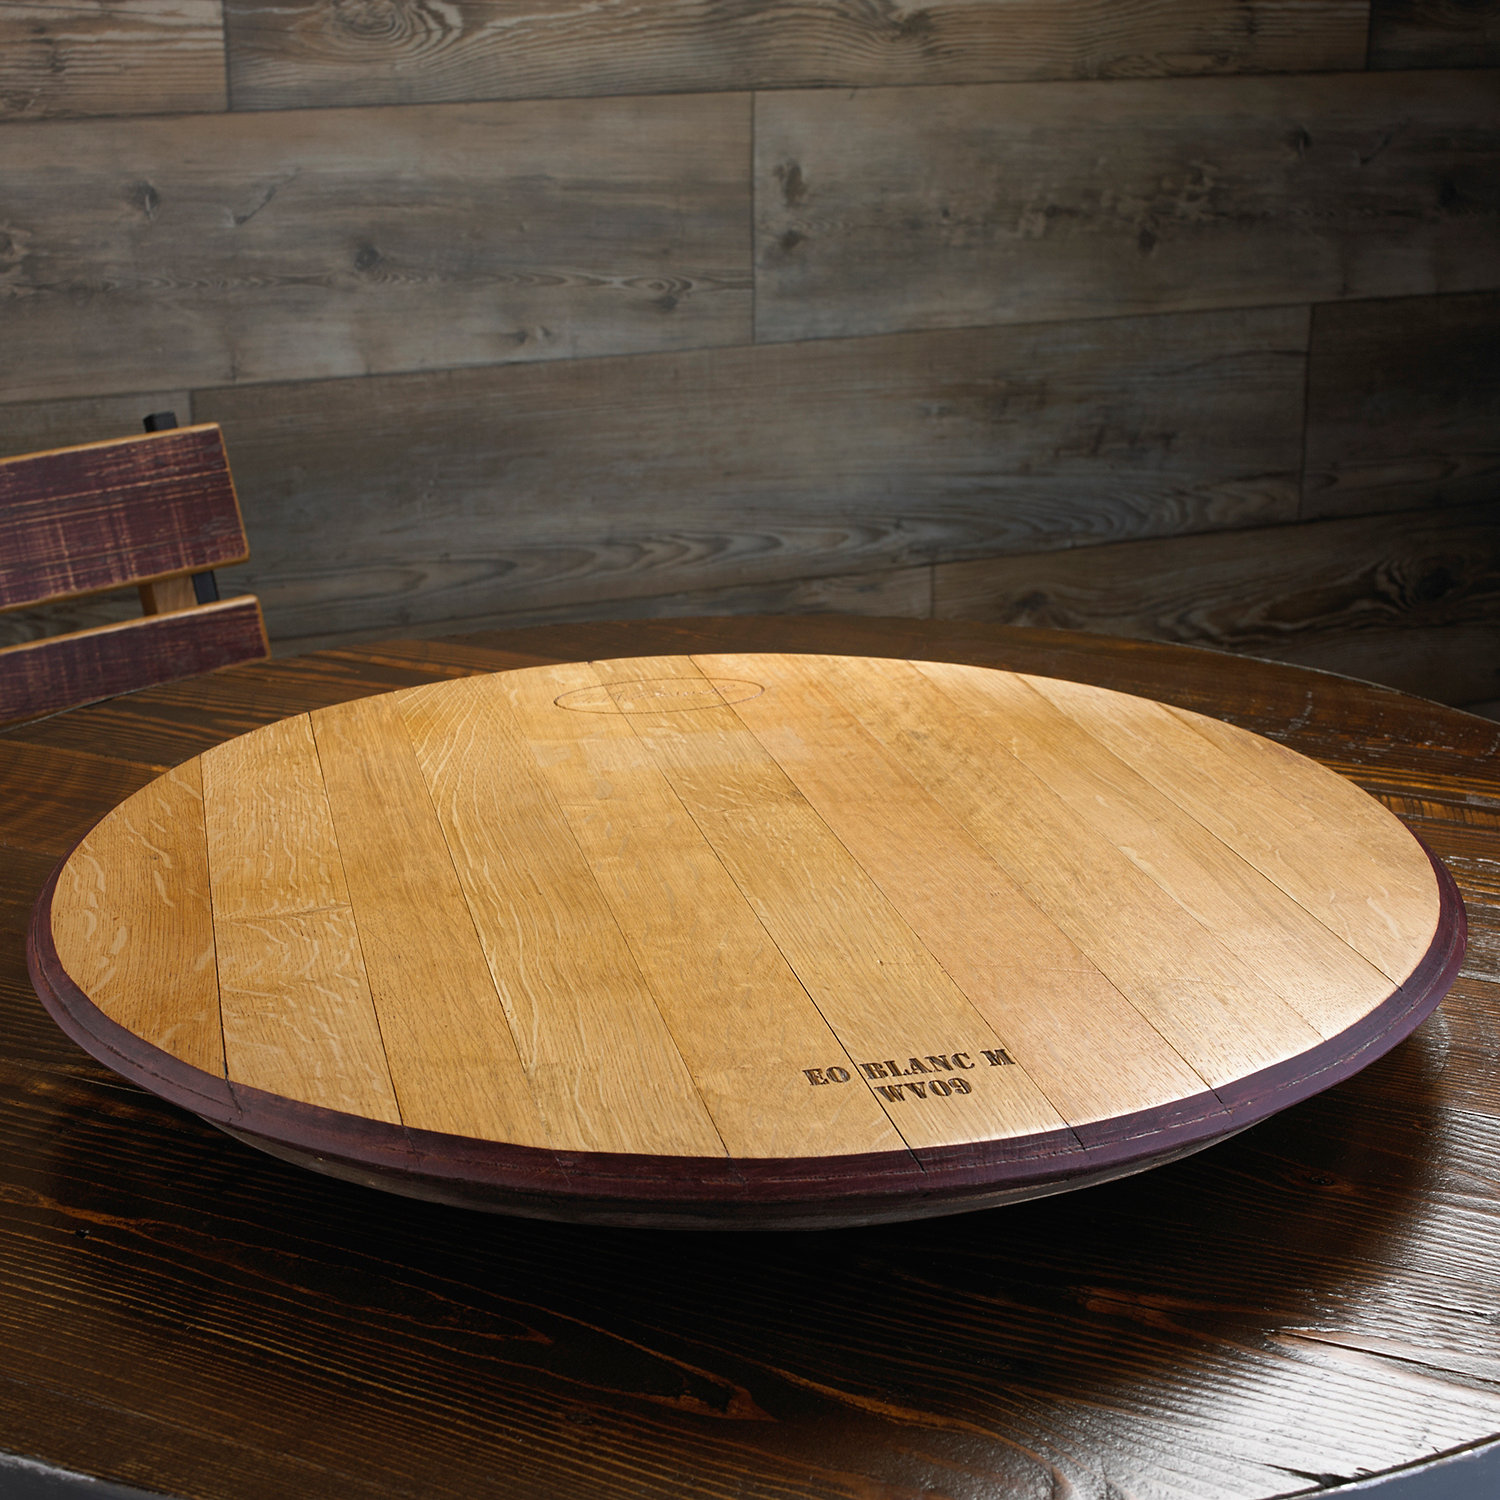 Amazing wine barrel lazy susan for furniture accessories ideas with personalized wine barrel lazy susan